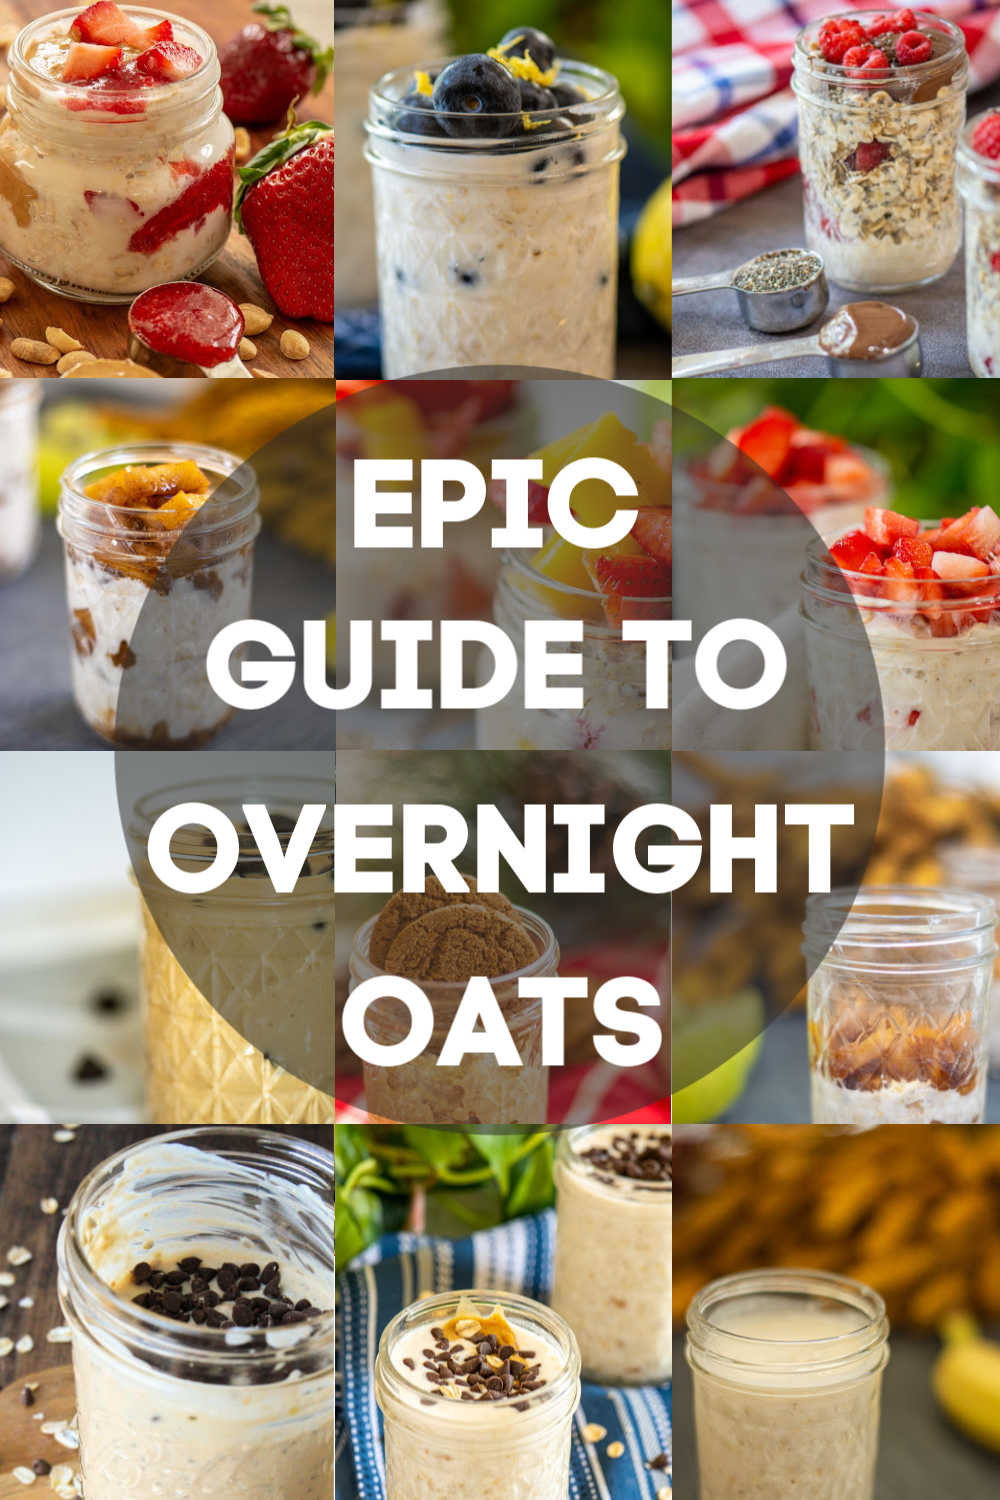 Everything you EVER wanted to know about overnight oats but were afraid to ask! This is the ultimate guide to the easiest (and tastiest) meal prep breakfast on the planet! Make several days\' worth of on-the-go breakfasts in just a few minutes and change the ingredients to make it something new each day! #OvernightOats #MealPrep #Breakfast #BreakfastPrep #OnTheGo